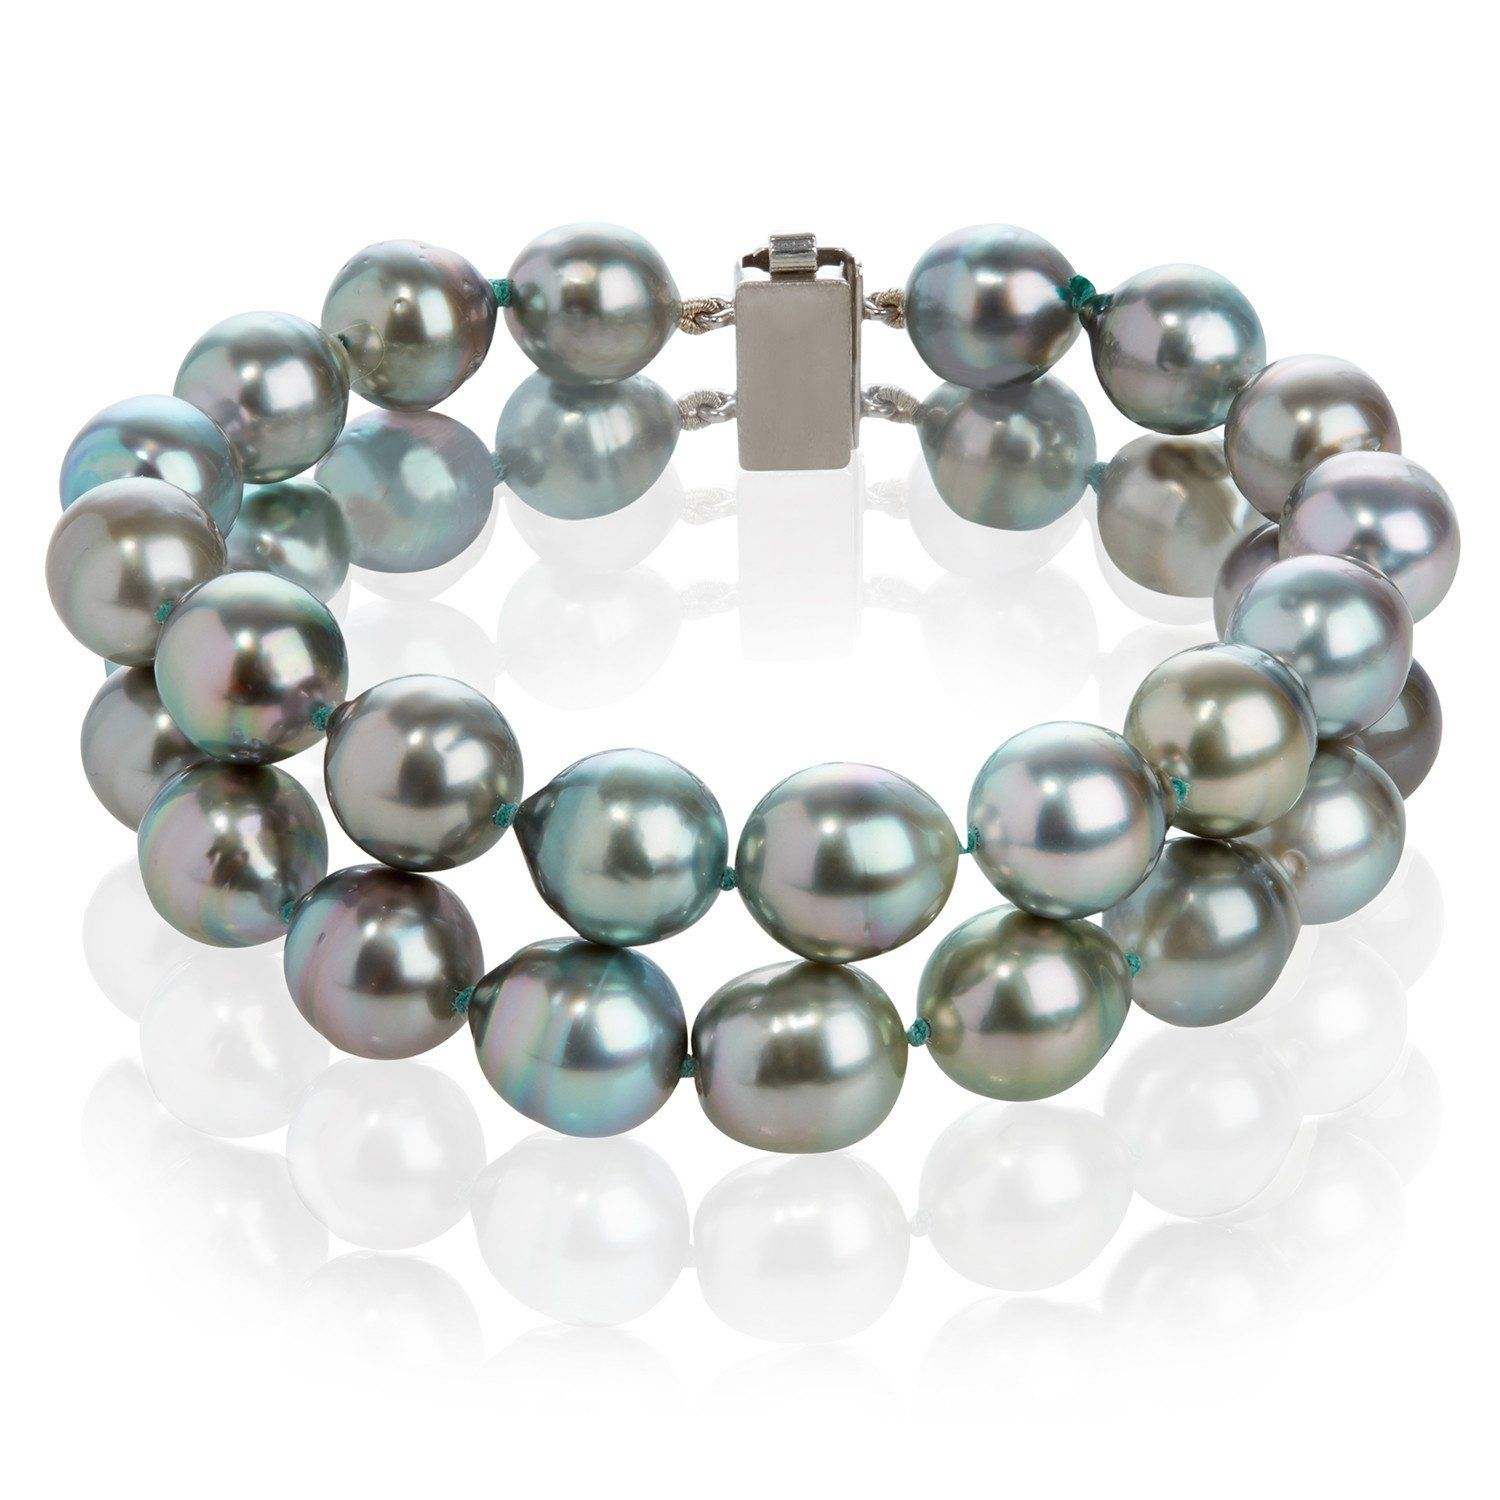 b627d6eb4 Tahitian Cultured Pearl Double Strand Bracelet from Coleman Douglas Pearls